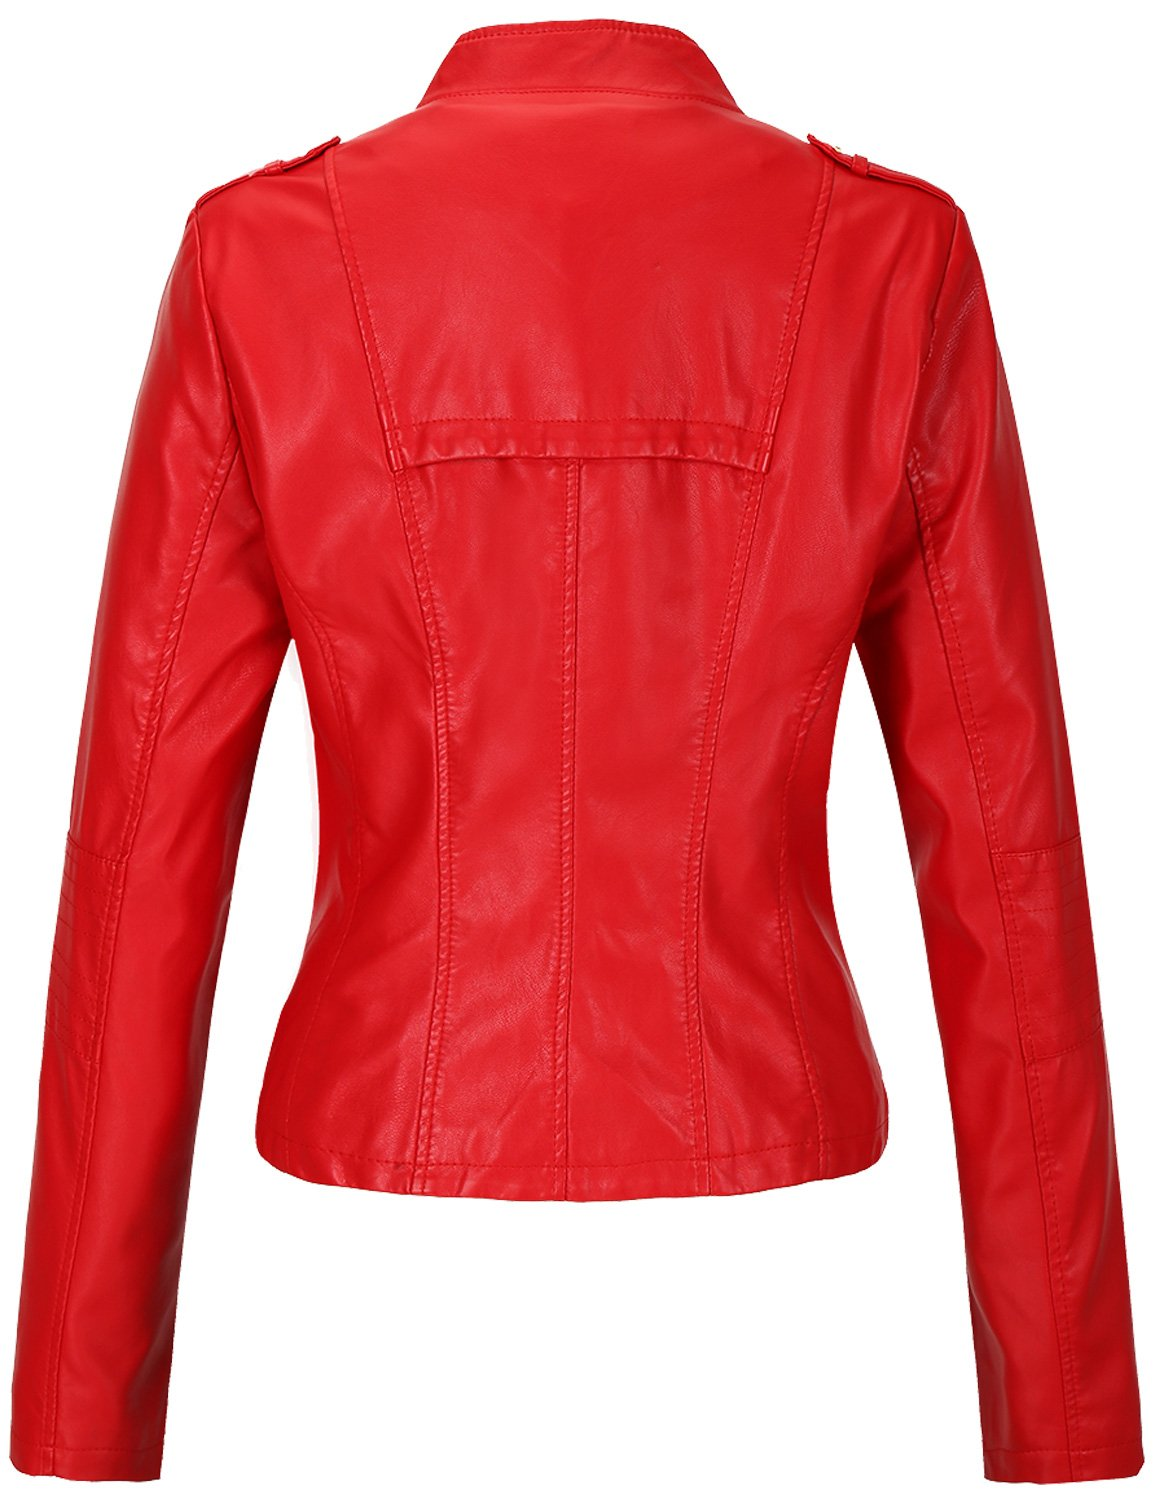 Tanming Women's Slim Zipper Color Faux Leather Jacket Red (Large, Red) by Tanming (Image #2)